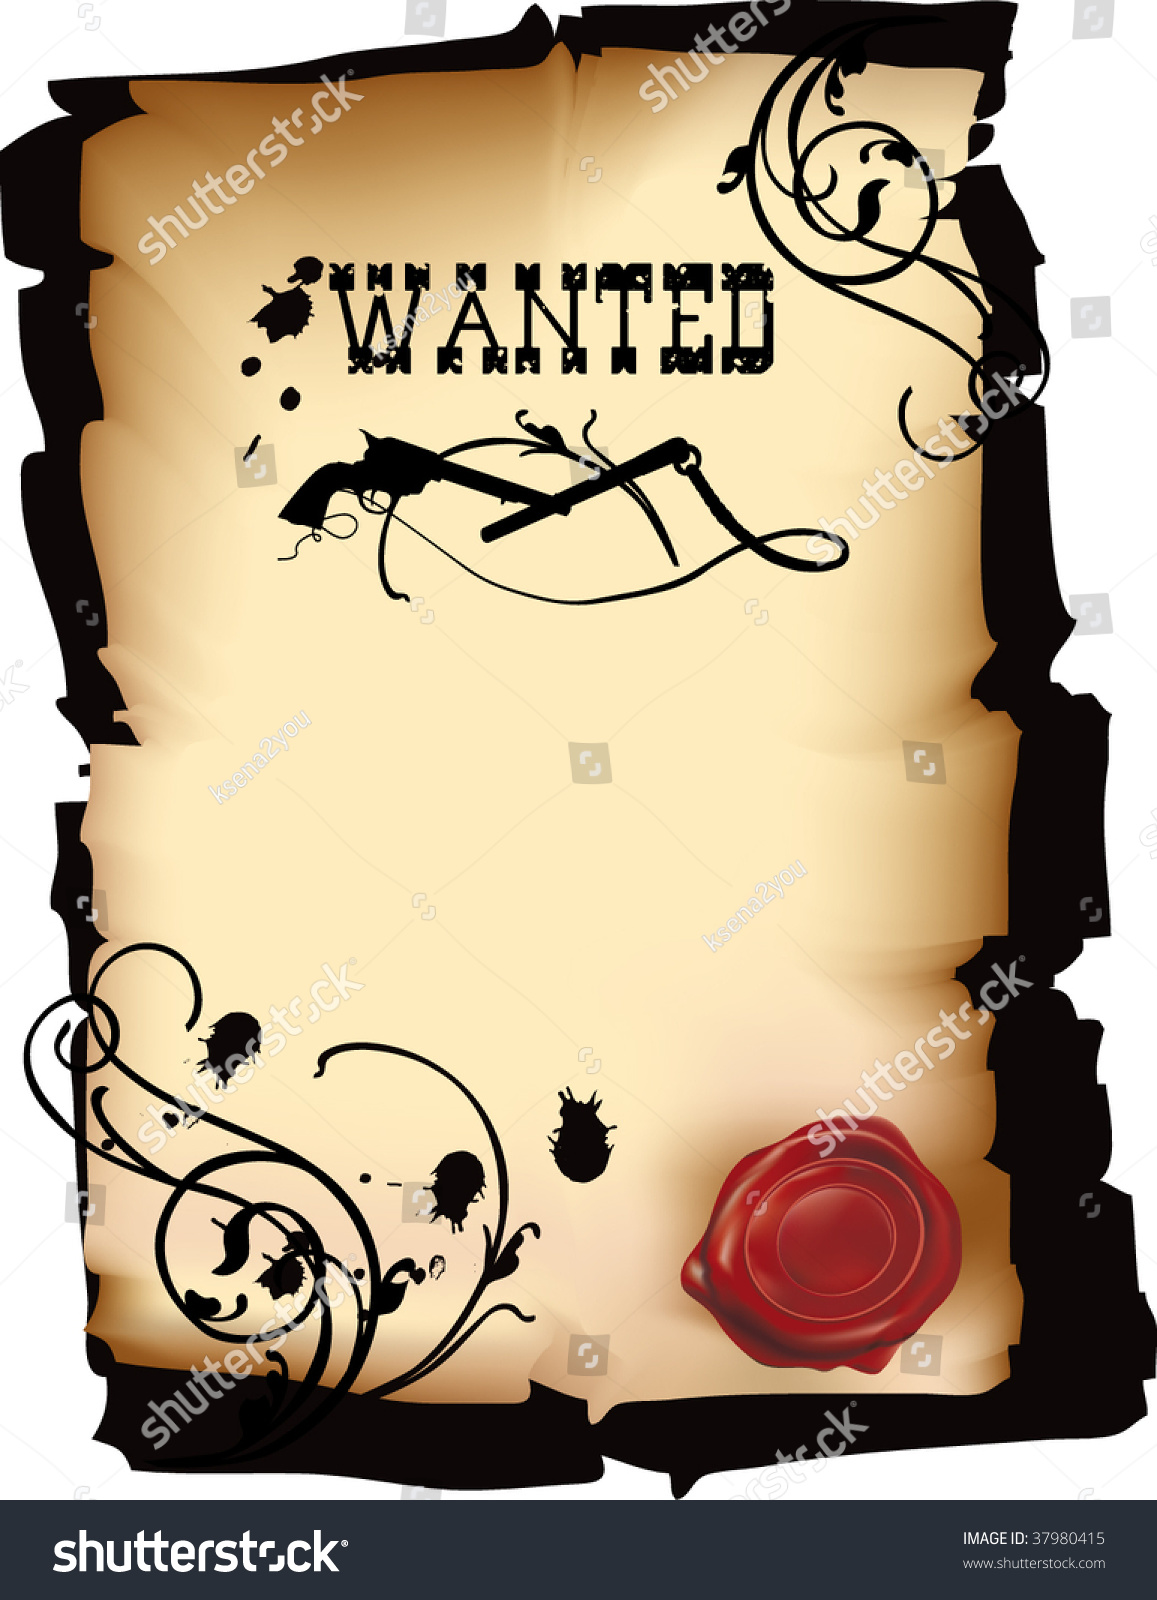 wild west wanted poster vector format stock vector